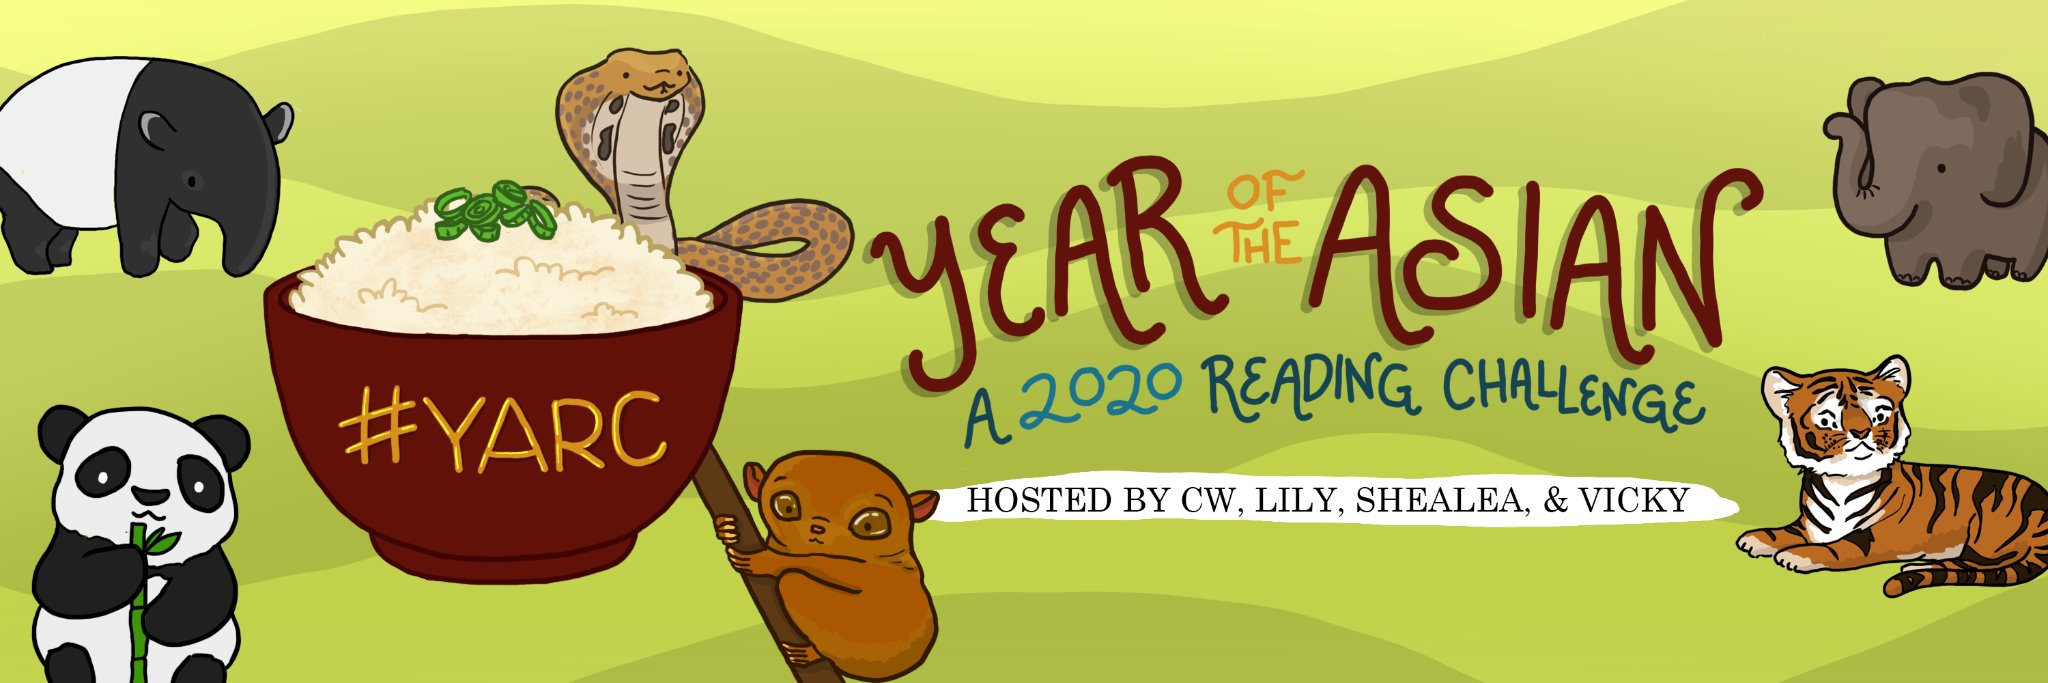 Year of the Asian, a 2020 Reading Challenge. Hosted by CW, Lily, Shealea, and Vicky